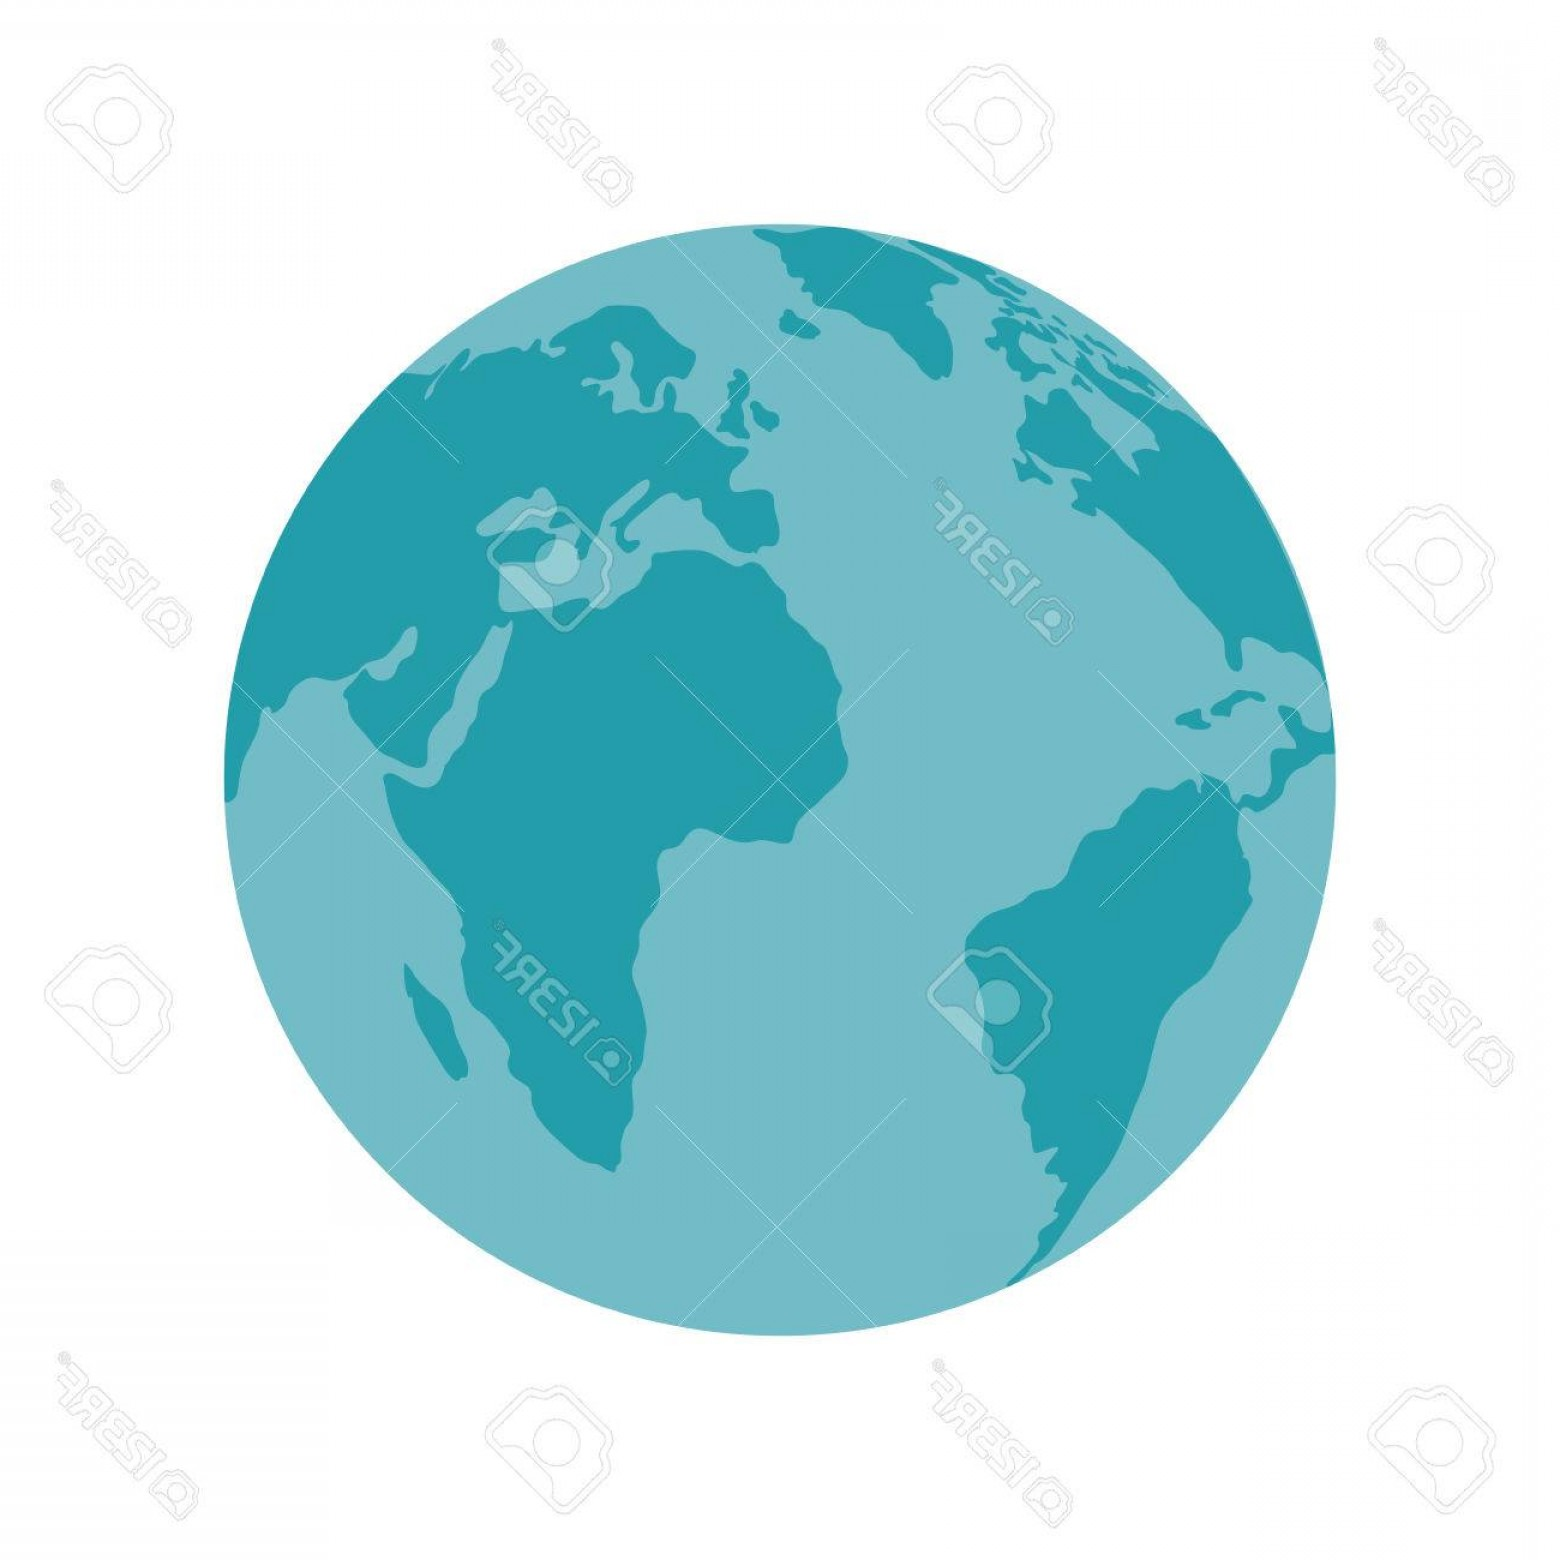 Vector Globe Countries: Photostock Vector Planet Earth Global Globe Countries Continent Ocean Geography Vector Illustration